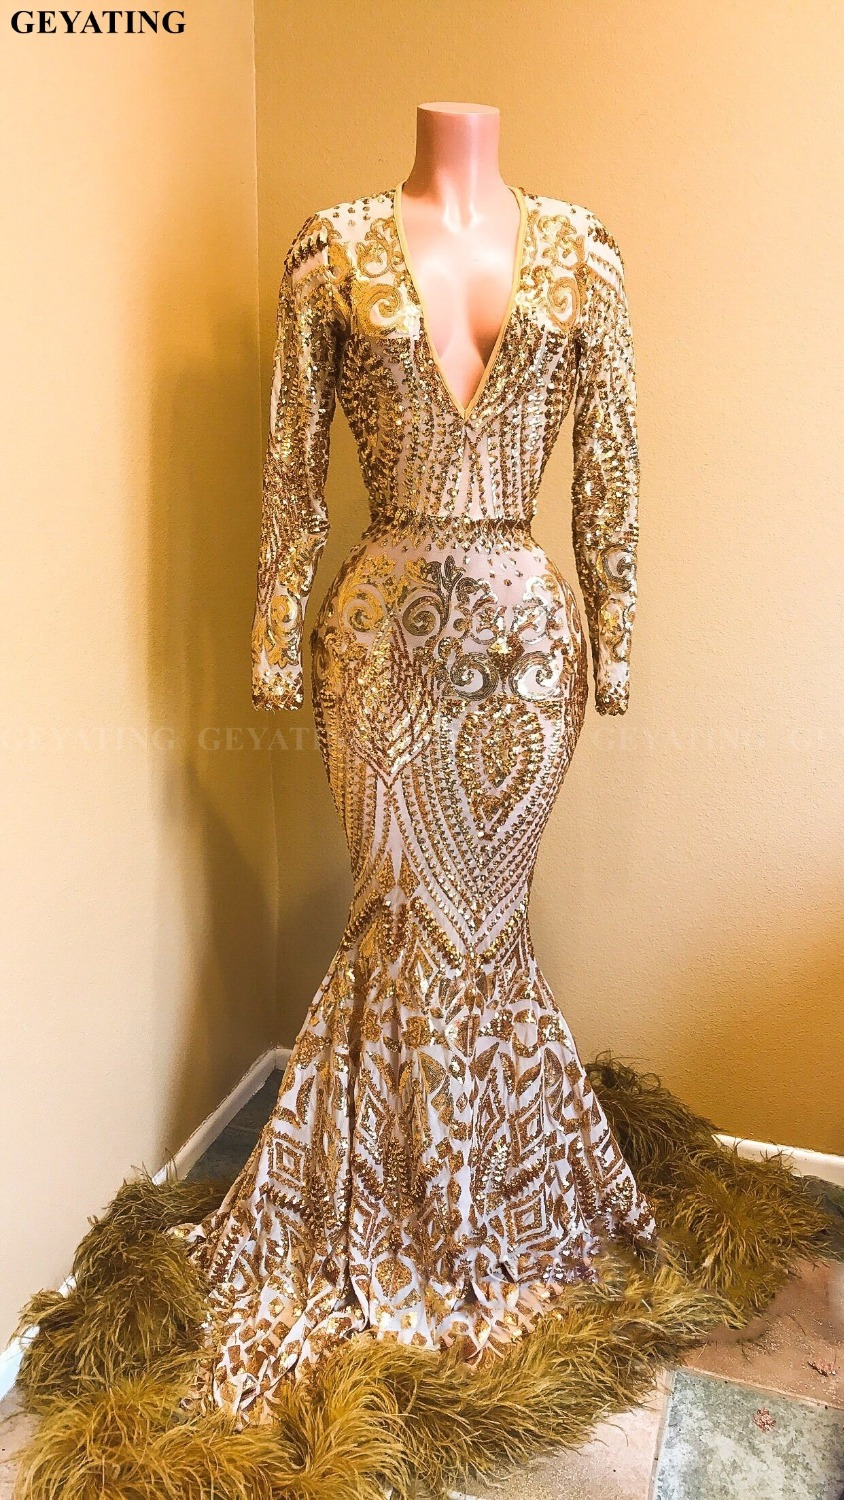 Sparkly Sequin Long Sleeves Mermaid Gold Feather Prom Dresses 2019 Sexy V-Neck African Girl Evening Party Gowns Graduation Dress